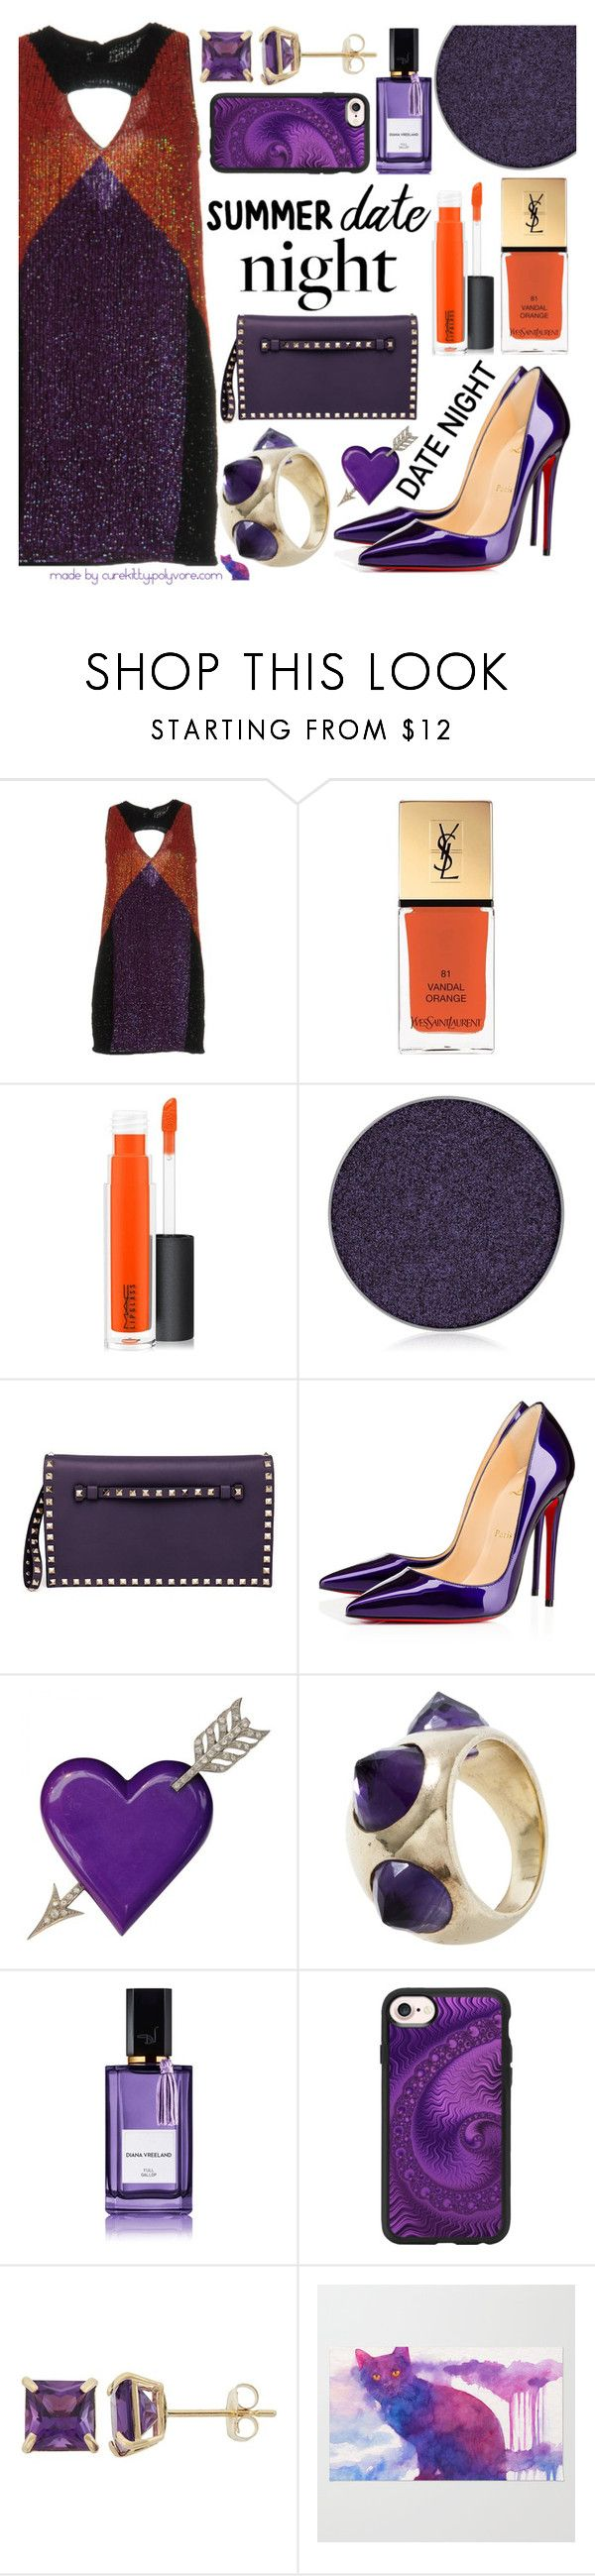 """""""Smokin' Hot: Summer Date Night!"""" by curekitty ❤ liked on Polyvore featuring Pinko, Yves Saint Laurent, MAC Cosmetics, Anastasia Beverly Hills, Valentino, Christian Louboutin, Jade Jagger, Diana Vreeland and Casetify"""